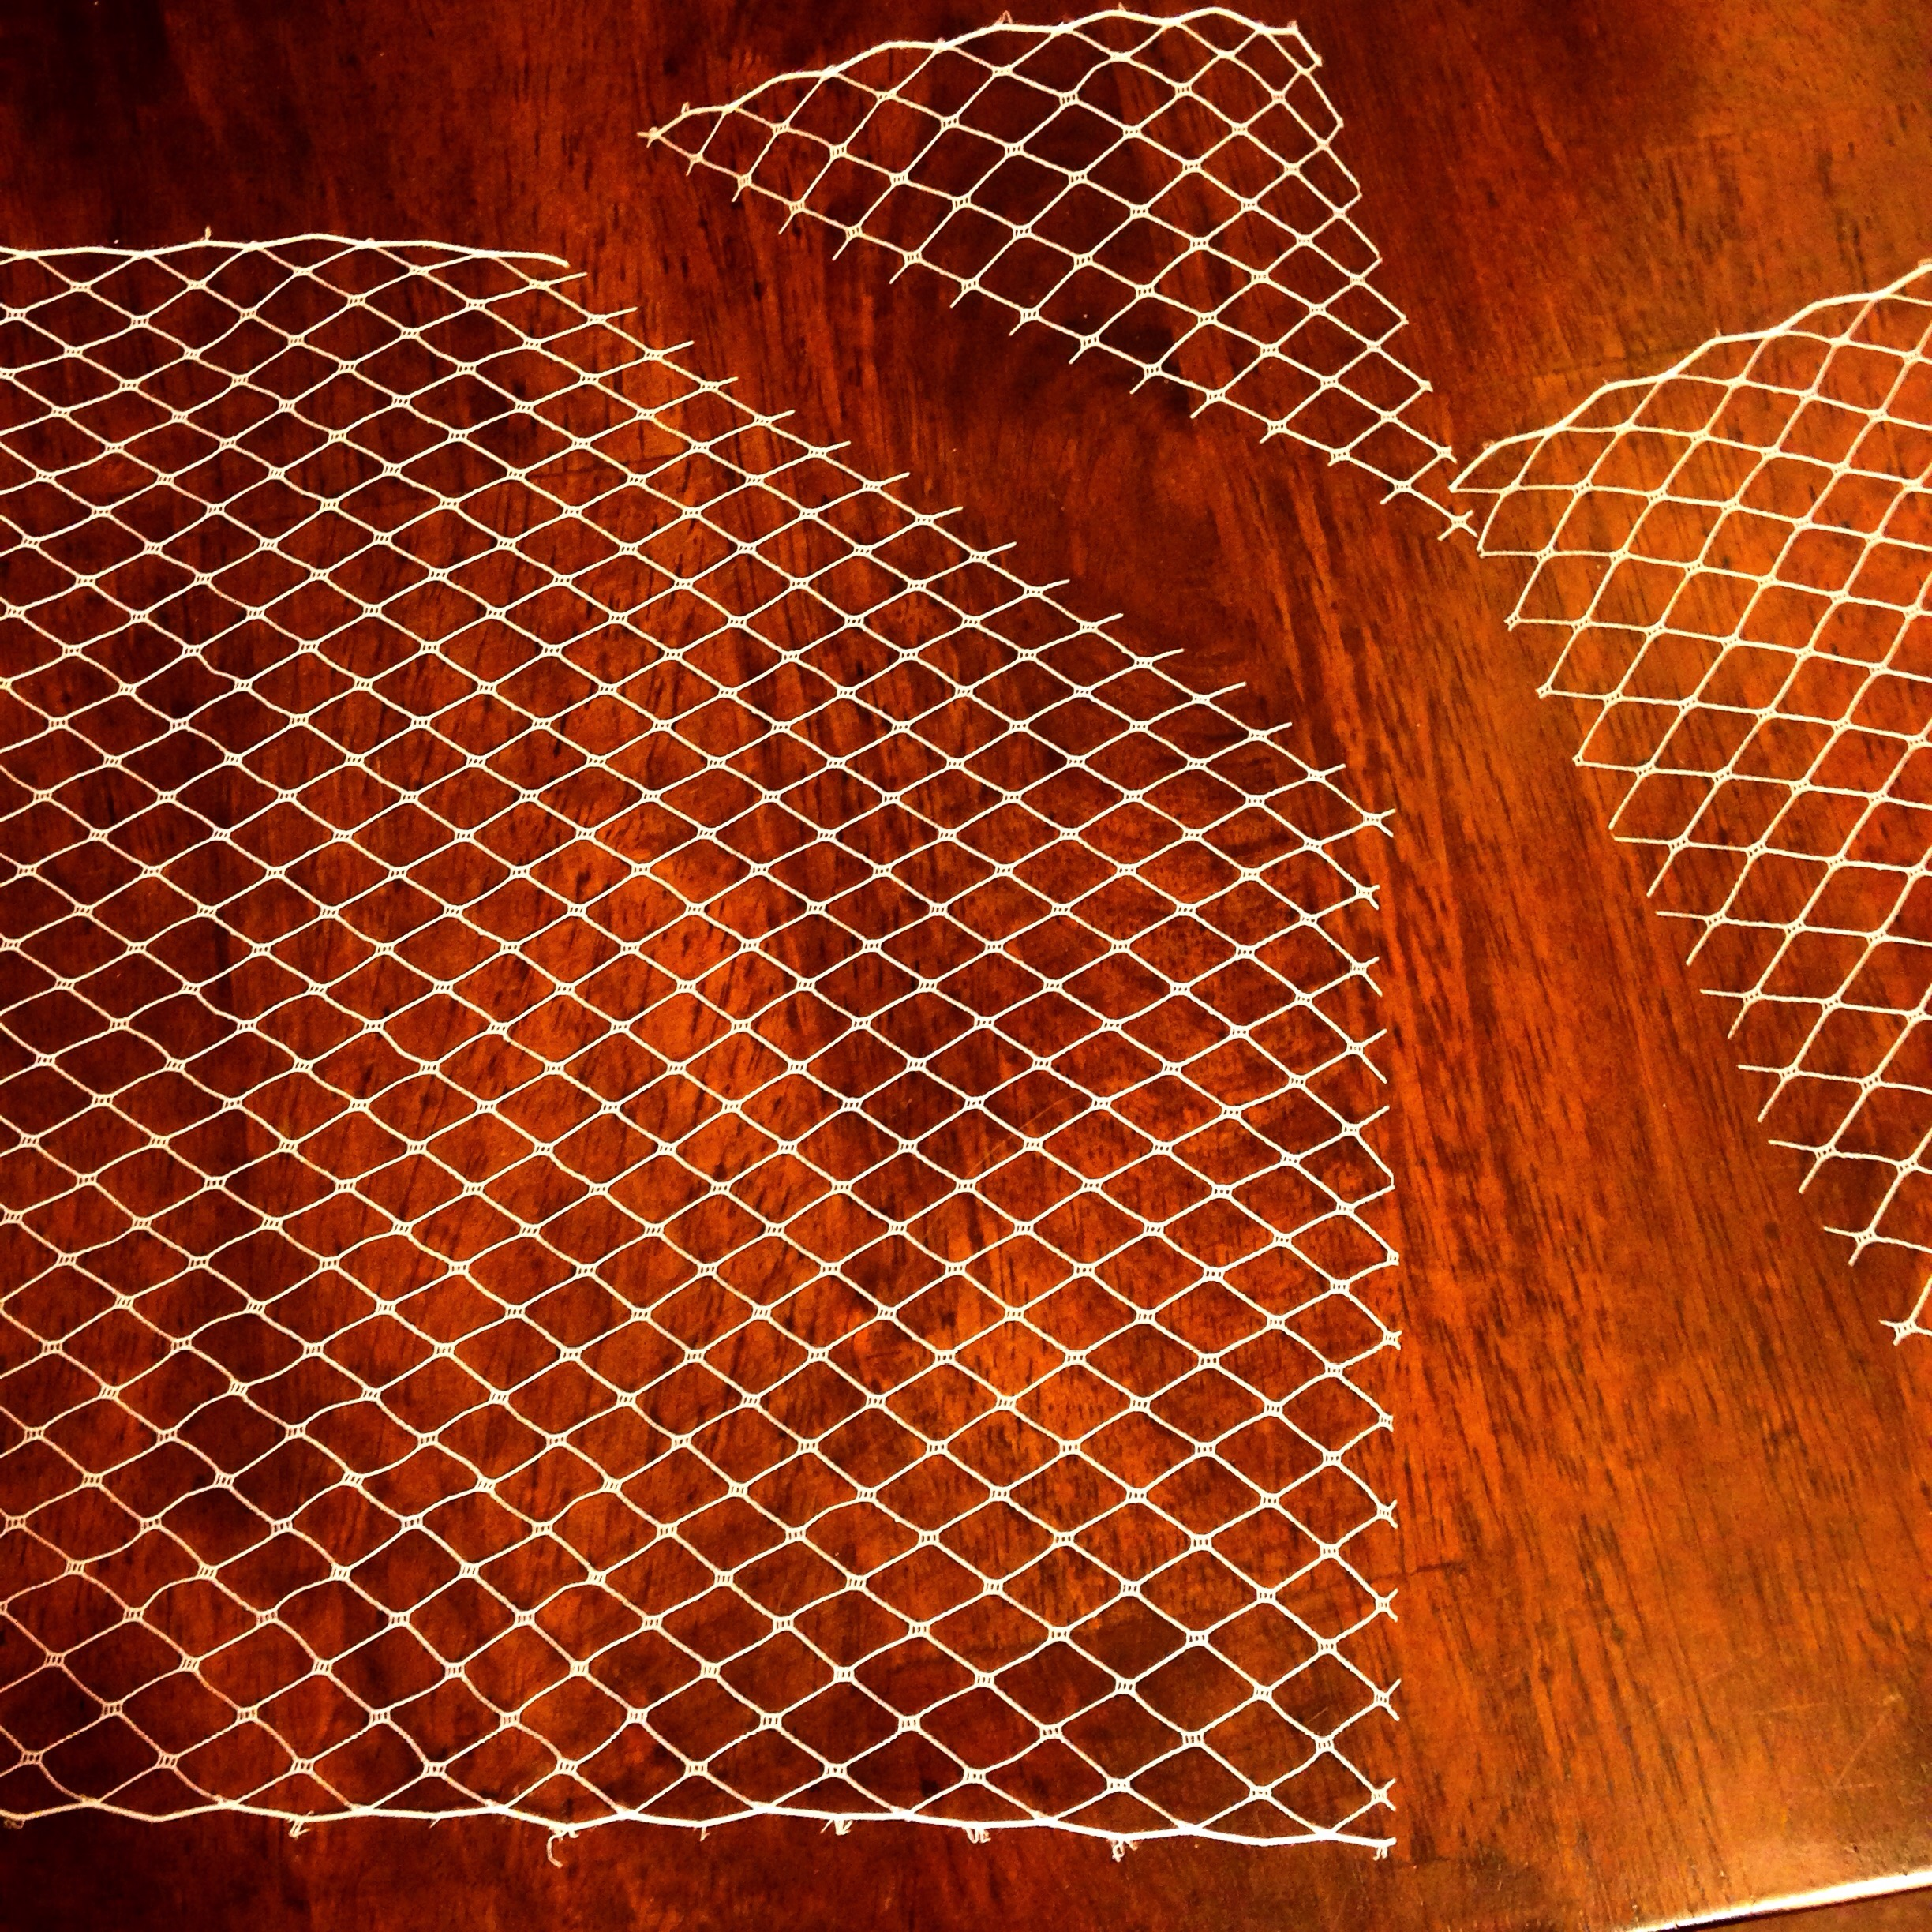 2490a0418c8b4 STEP 2  Count 7 holes down and follow the line of the netting to cut off  the upper right corner. Repeat for the other side.